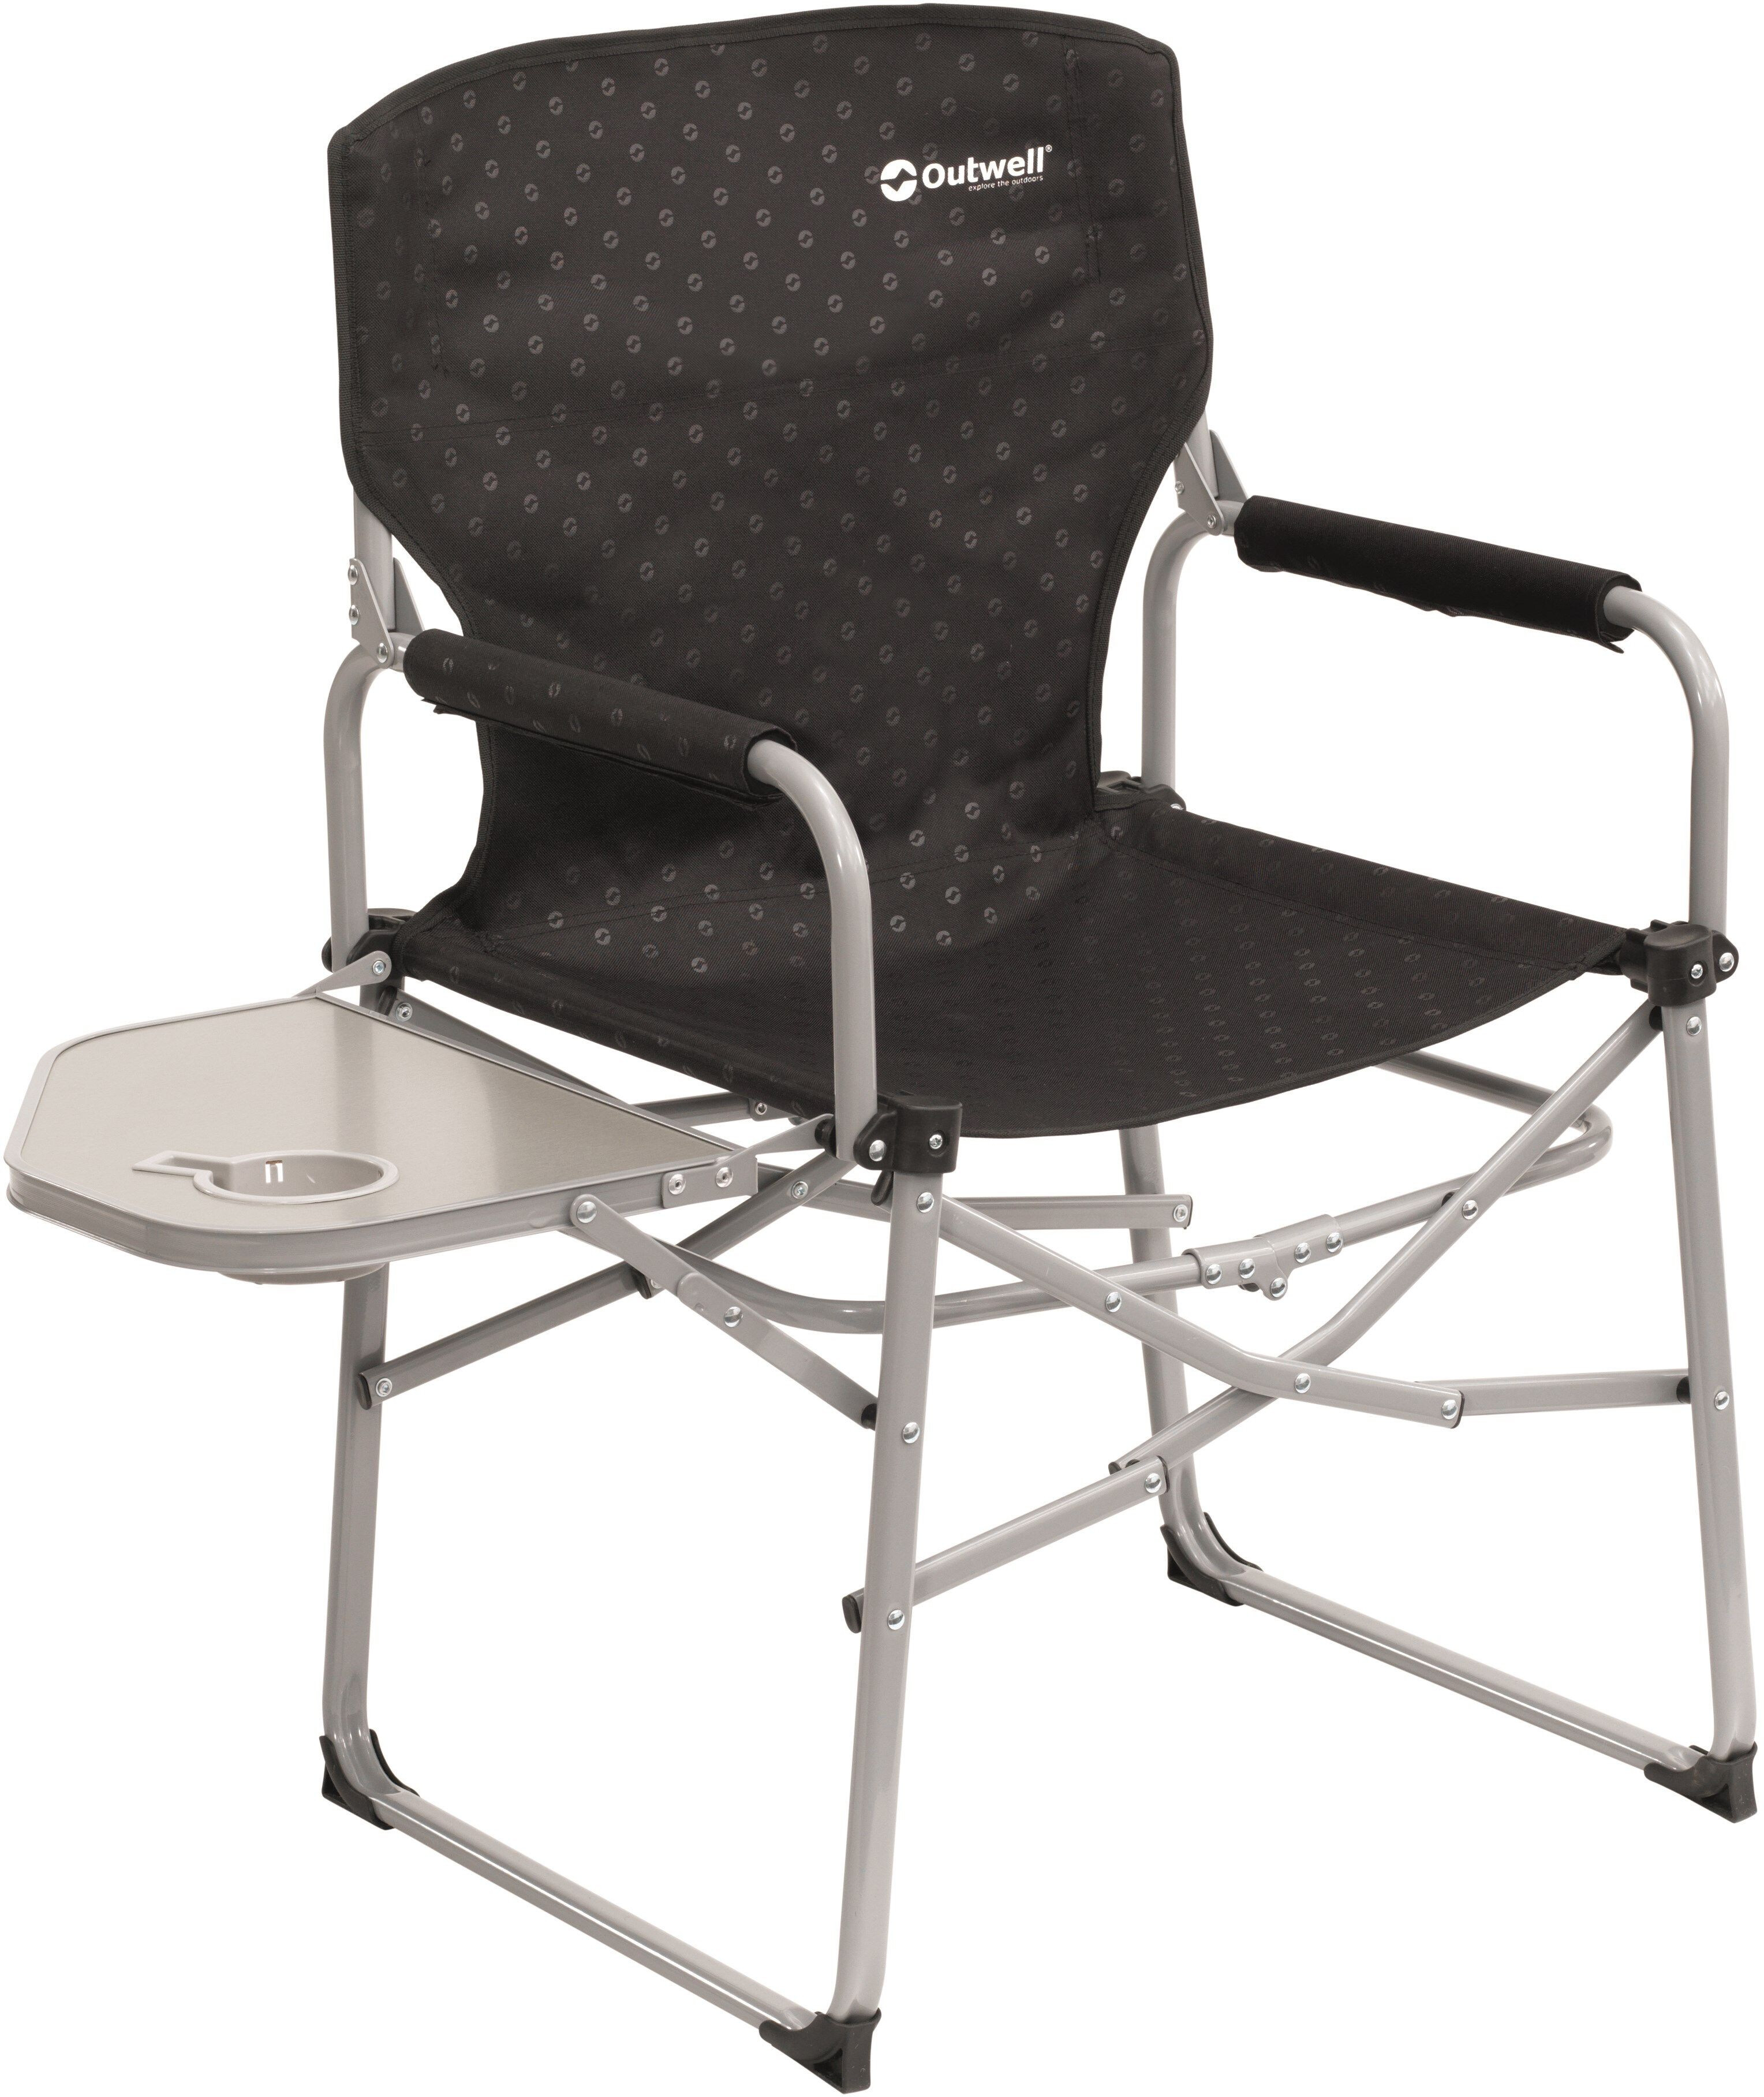 Outwell Picota Folding Chair With Side Table Campz De